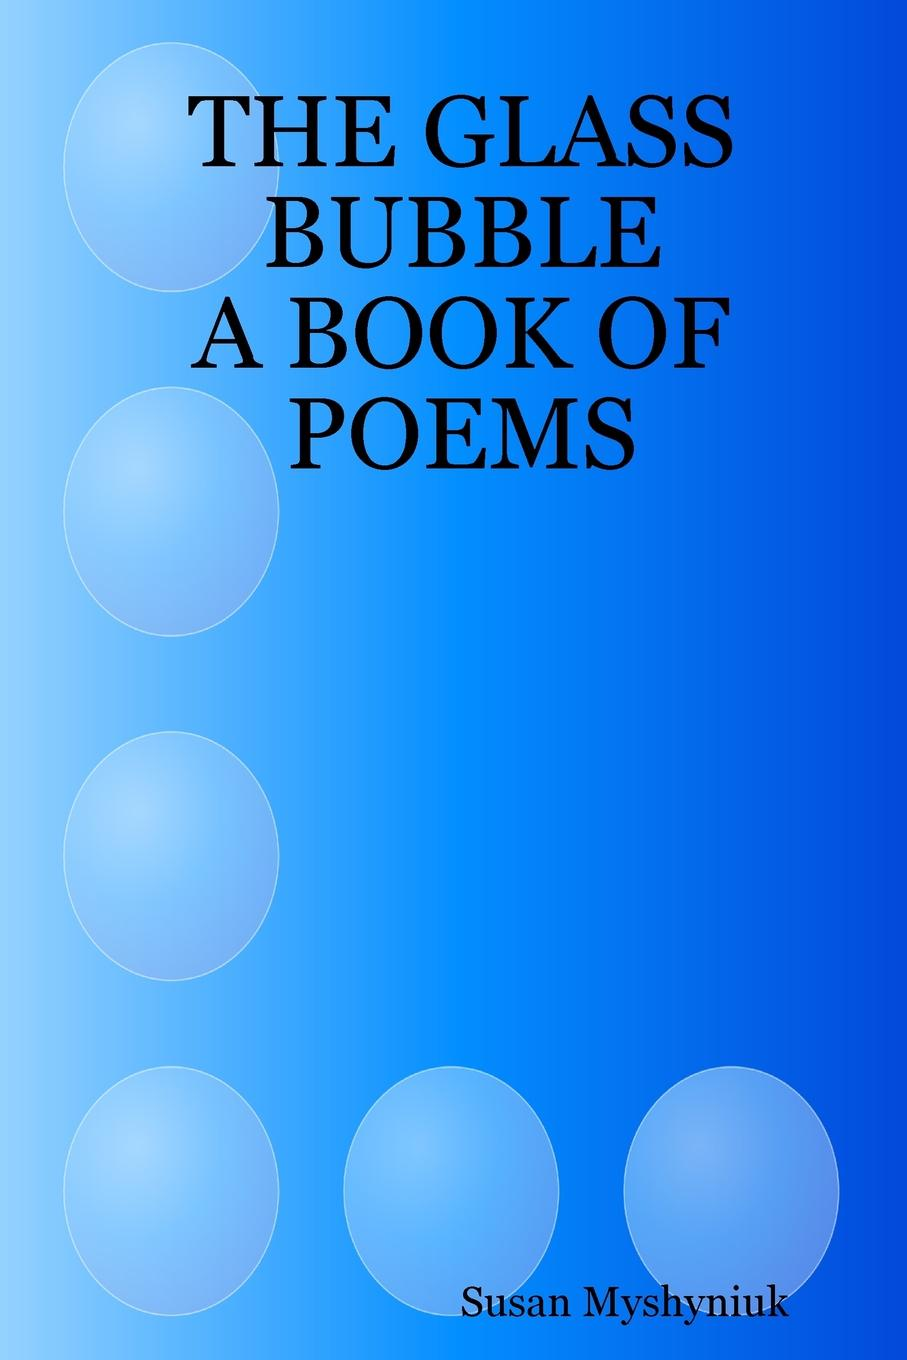 Susan Myshyniuk THE GLASS BUBBLE. A BOOK OF POEMS